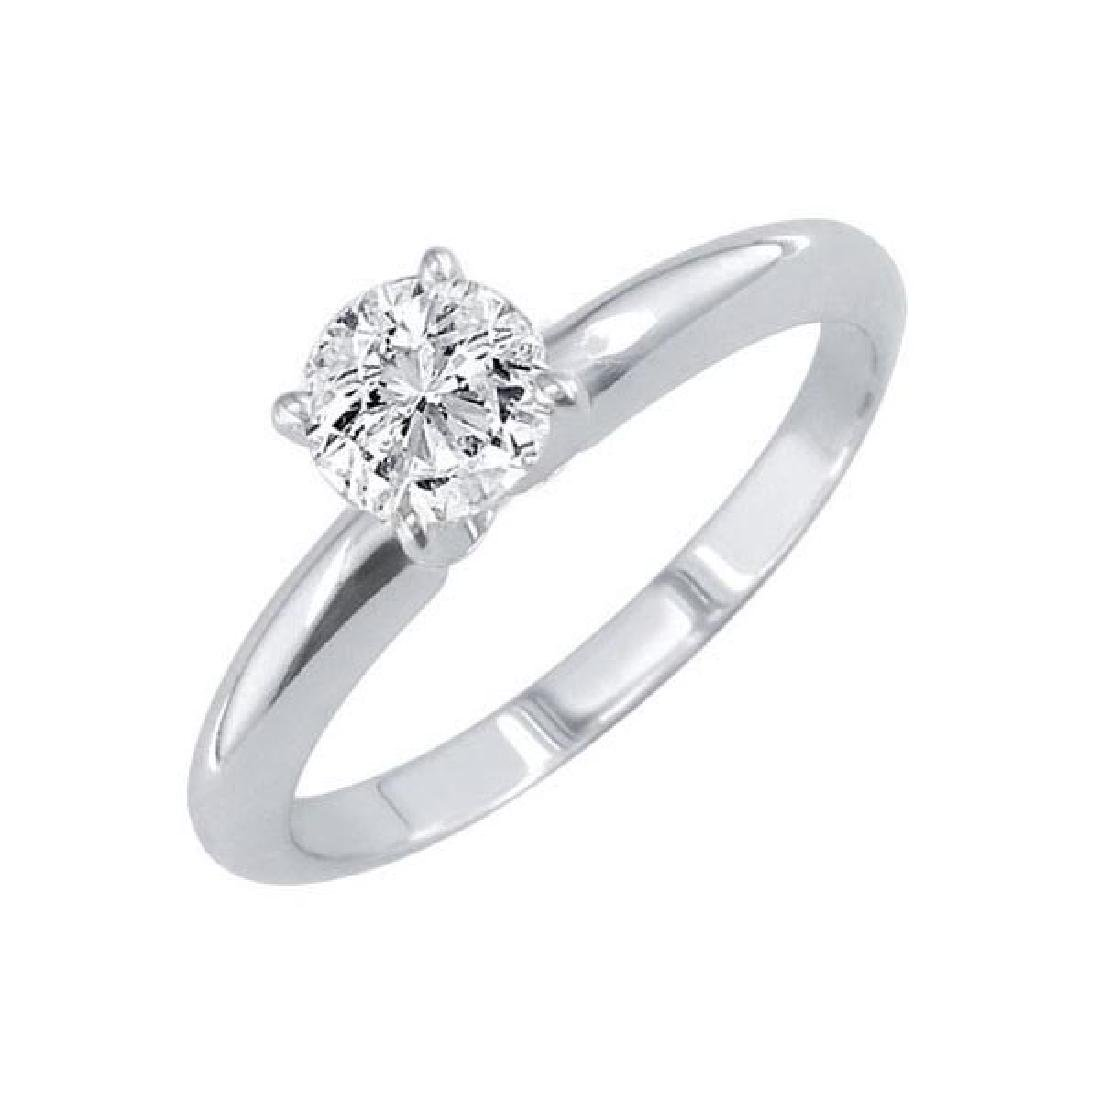 Certified 1.06 CTW Round Diamond Solitaire 14k Ring F/S